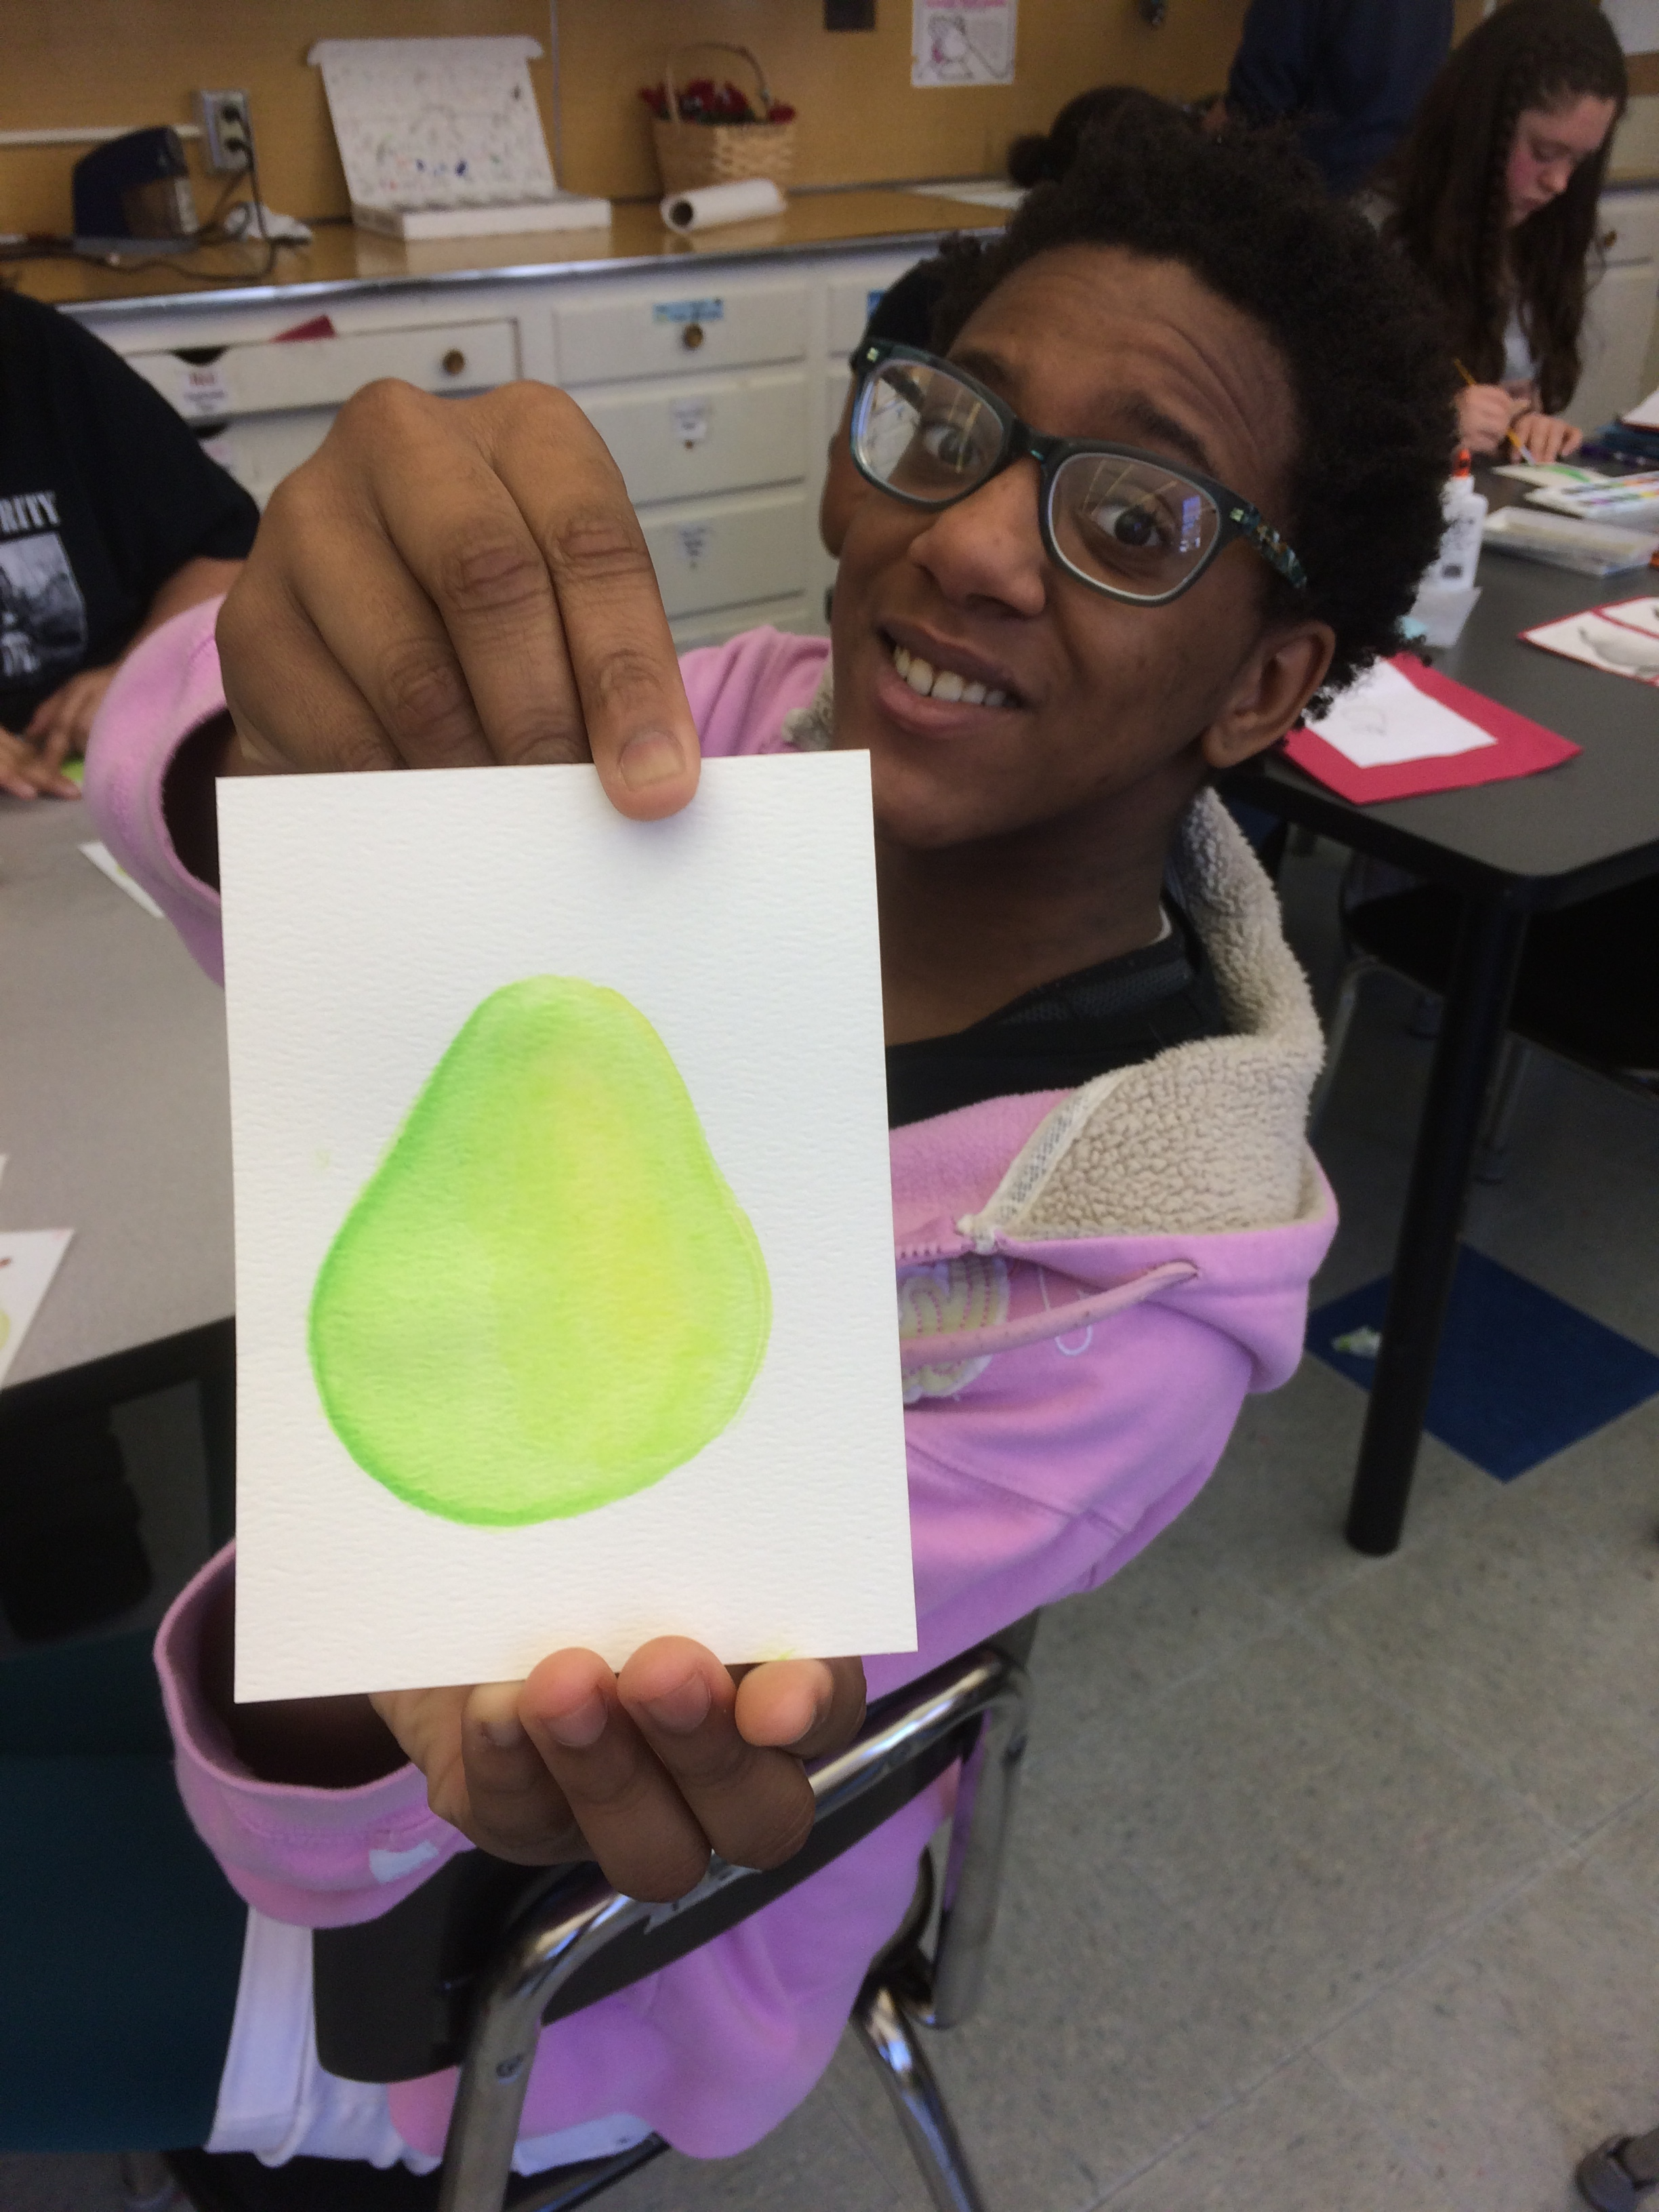 8th grader practicing shading/value with a pear drawing